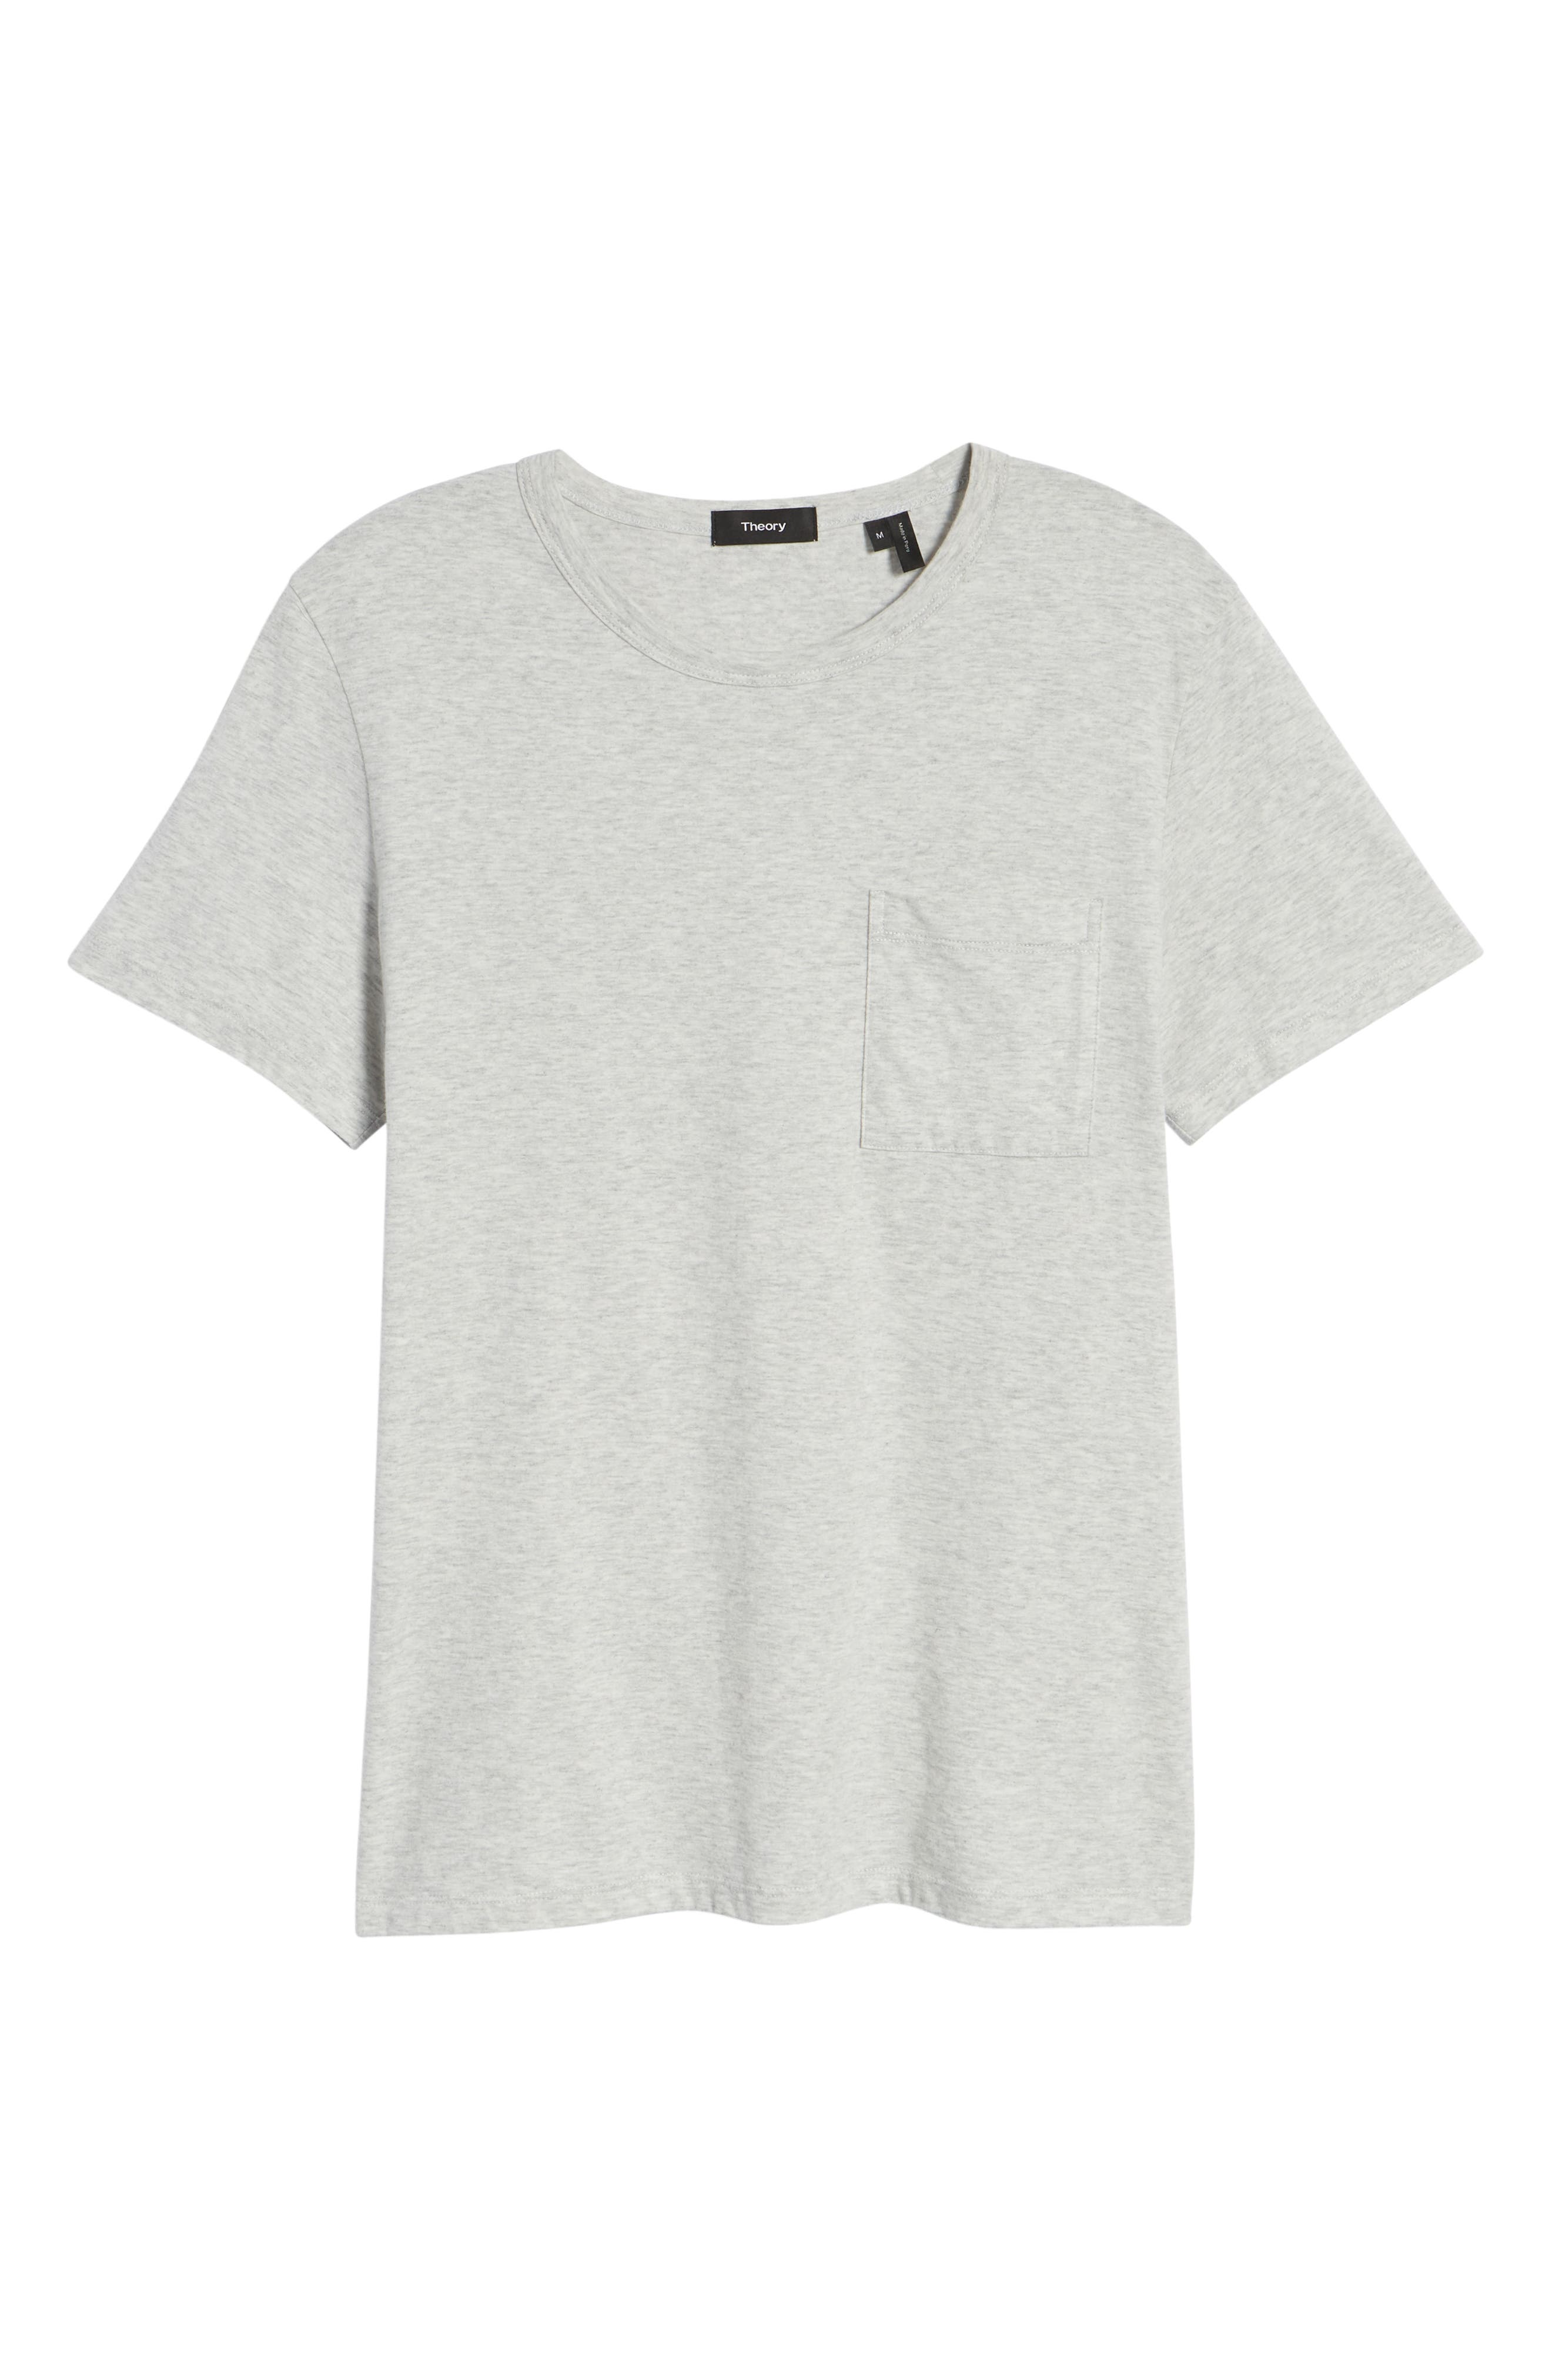 THEORY,                             Essential Pocket T-Shirt,                             Alternate thumbnail 6, color,                             020